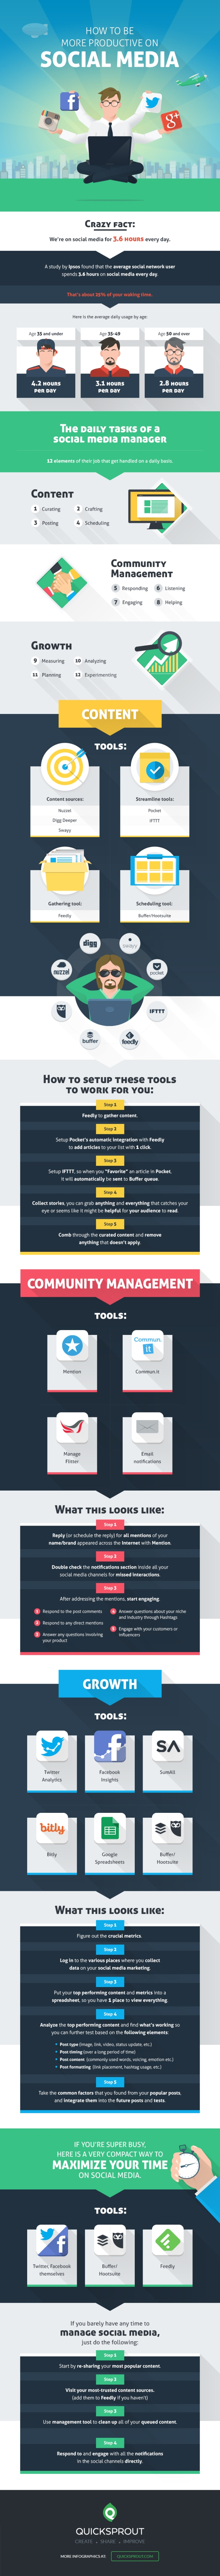 10+ Tools That Will Make Your Social Media Strategy More Productive